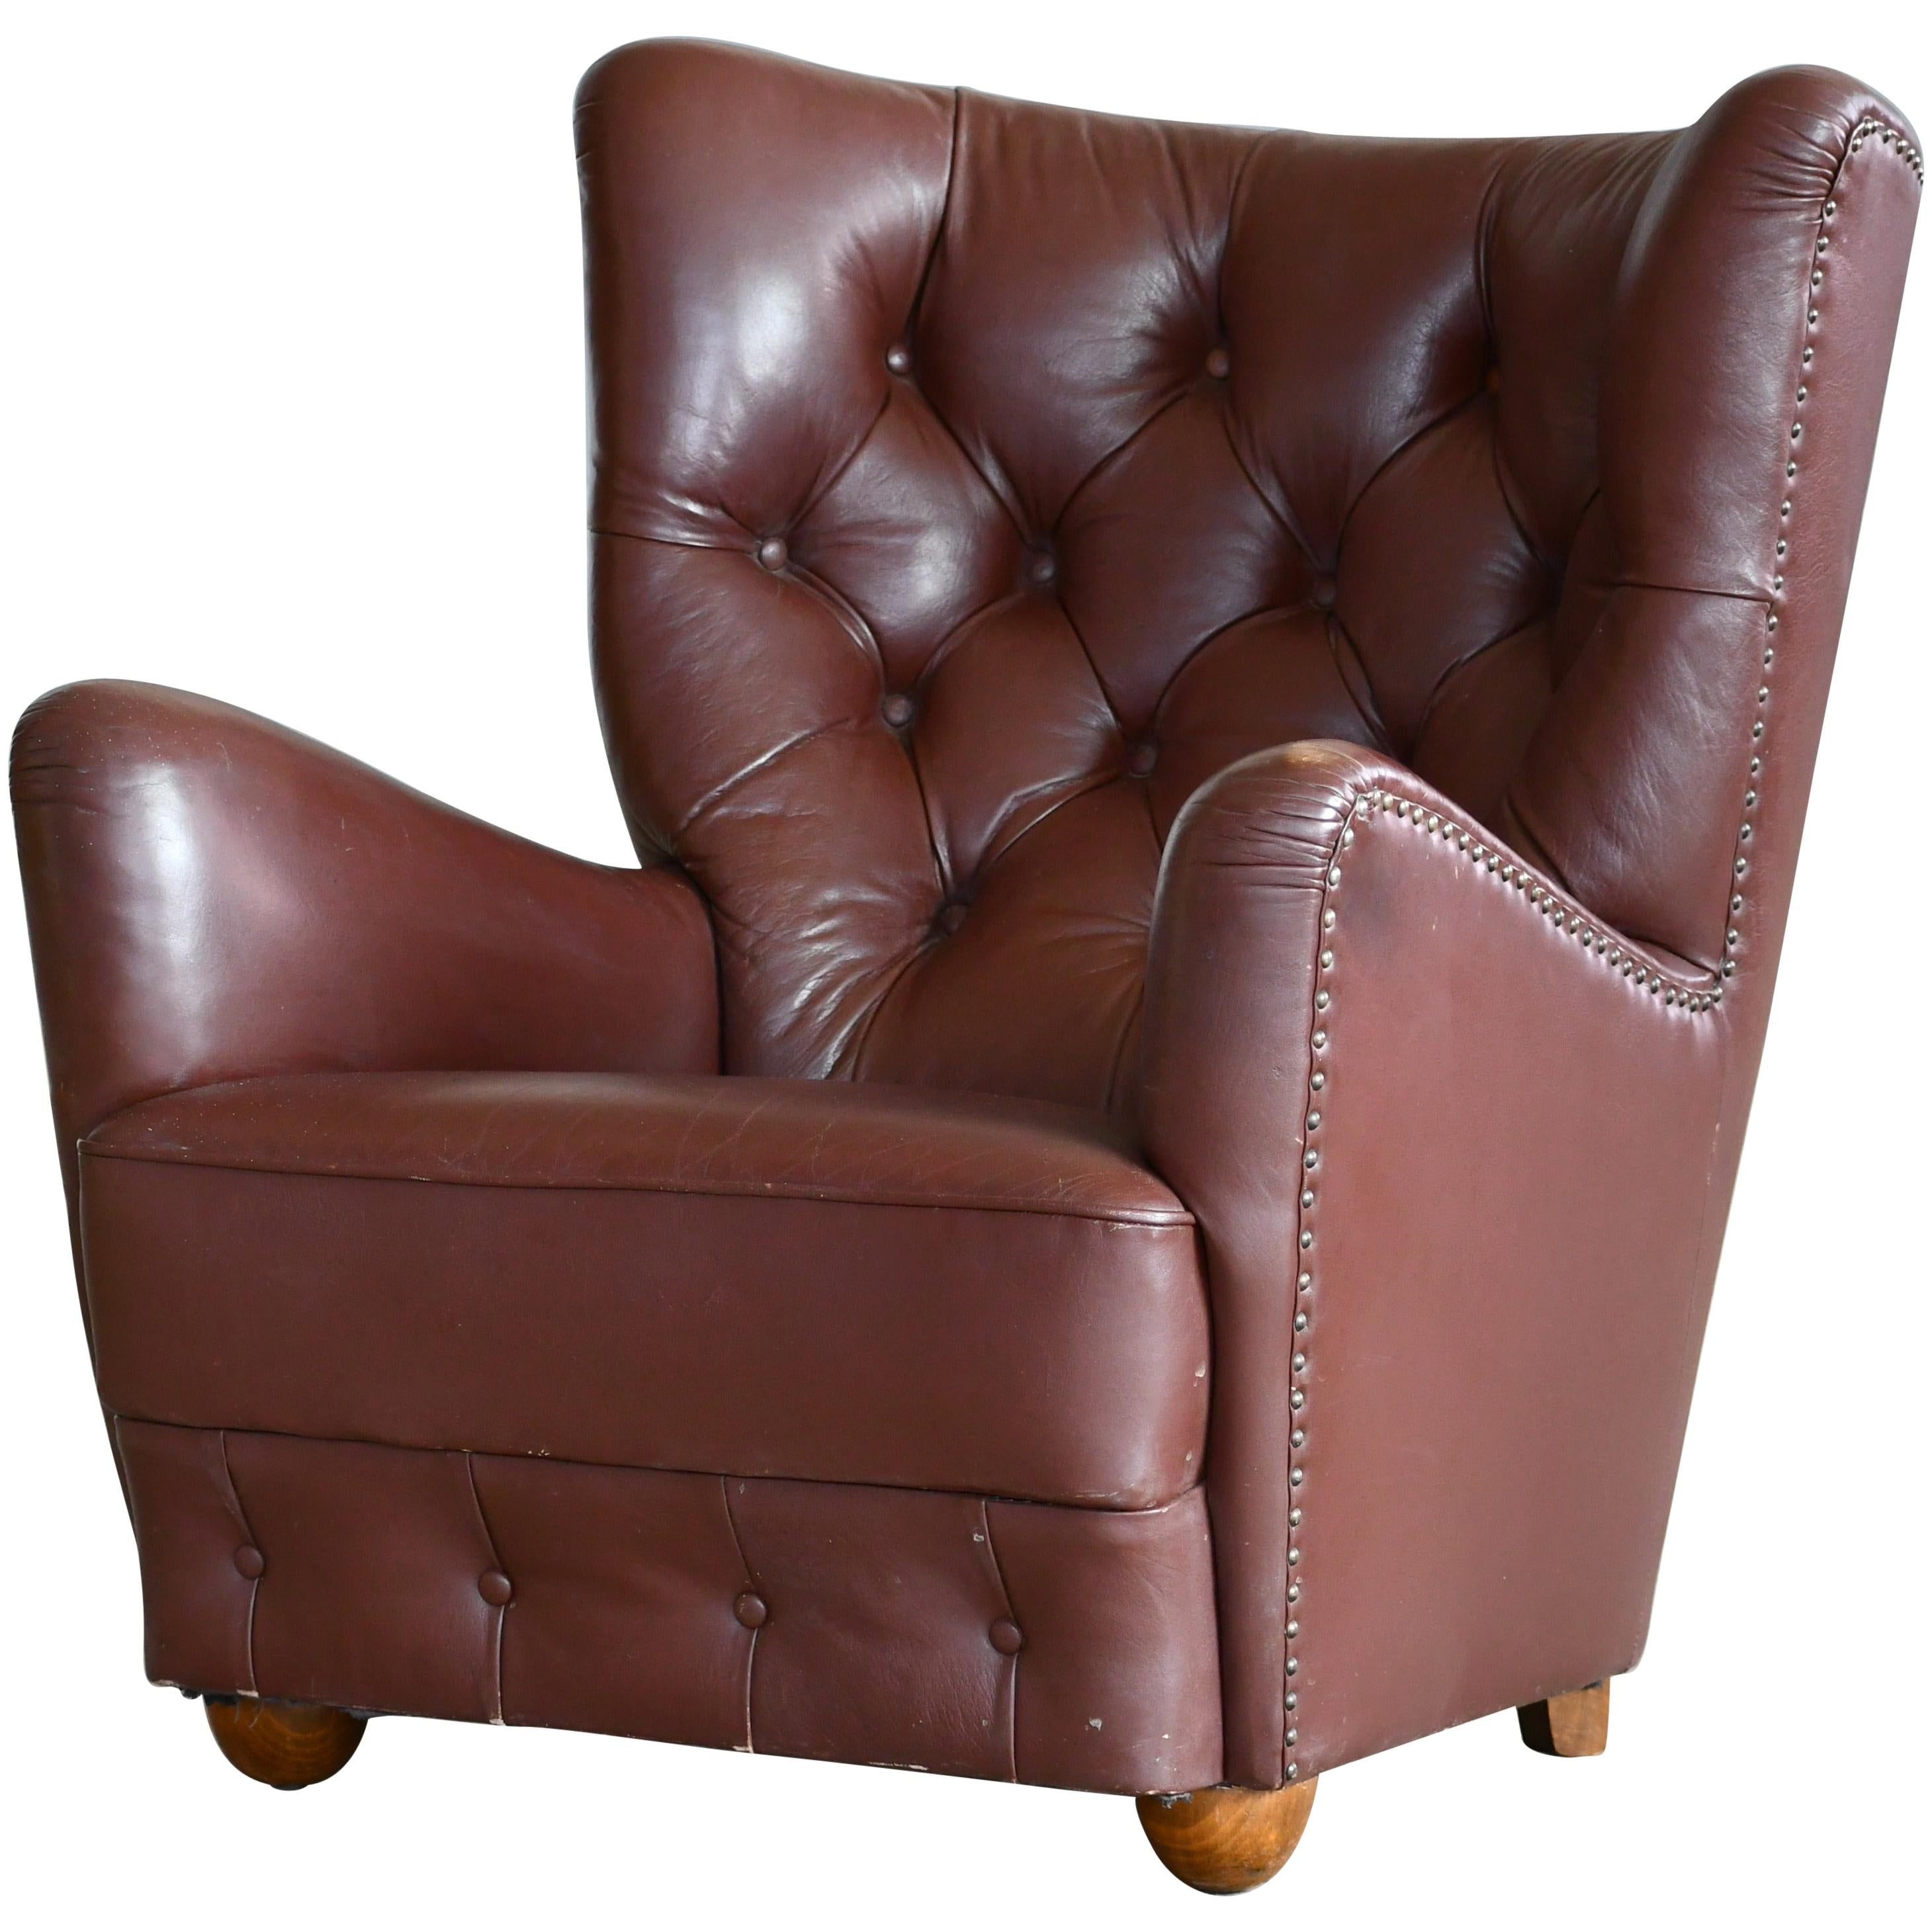 Georg Kofoed Attributed Danish 1940s Lounge Chair in Tufted Brown Leather